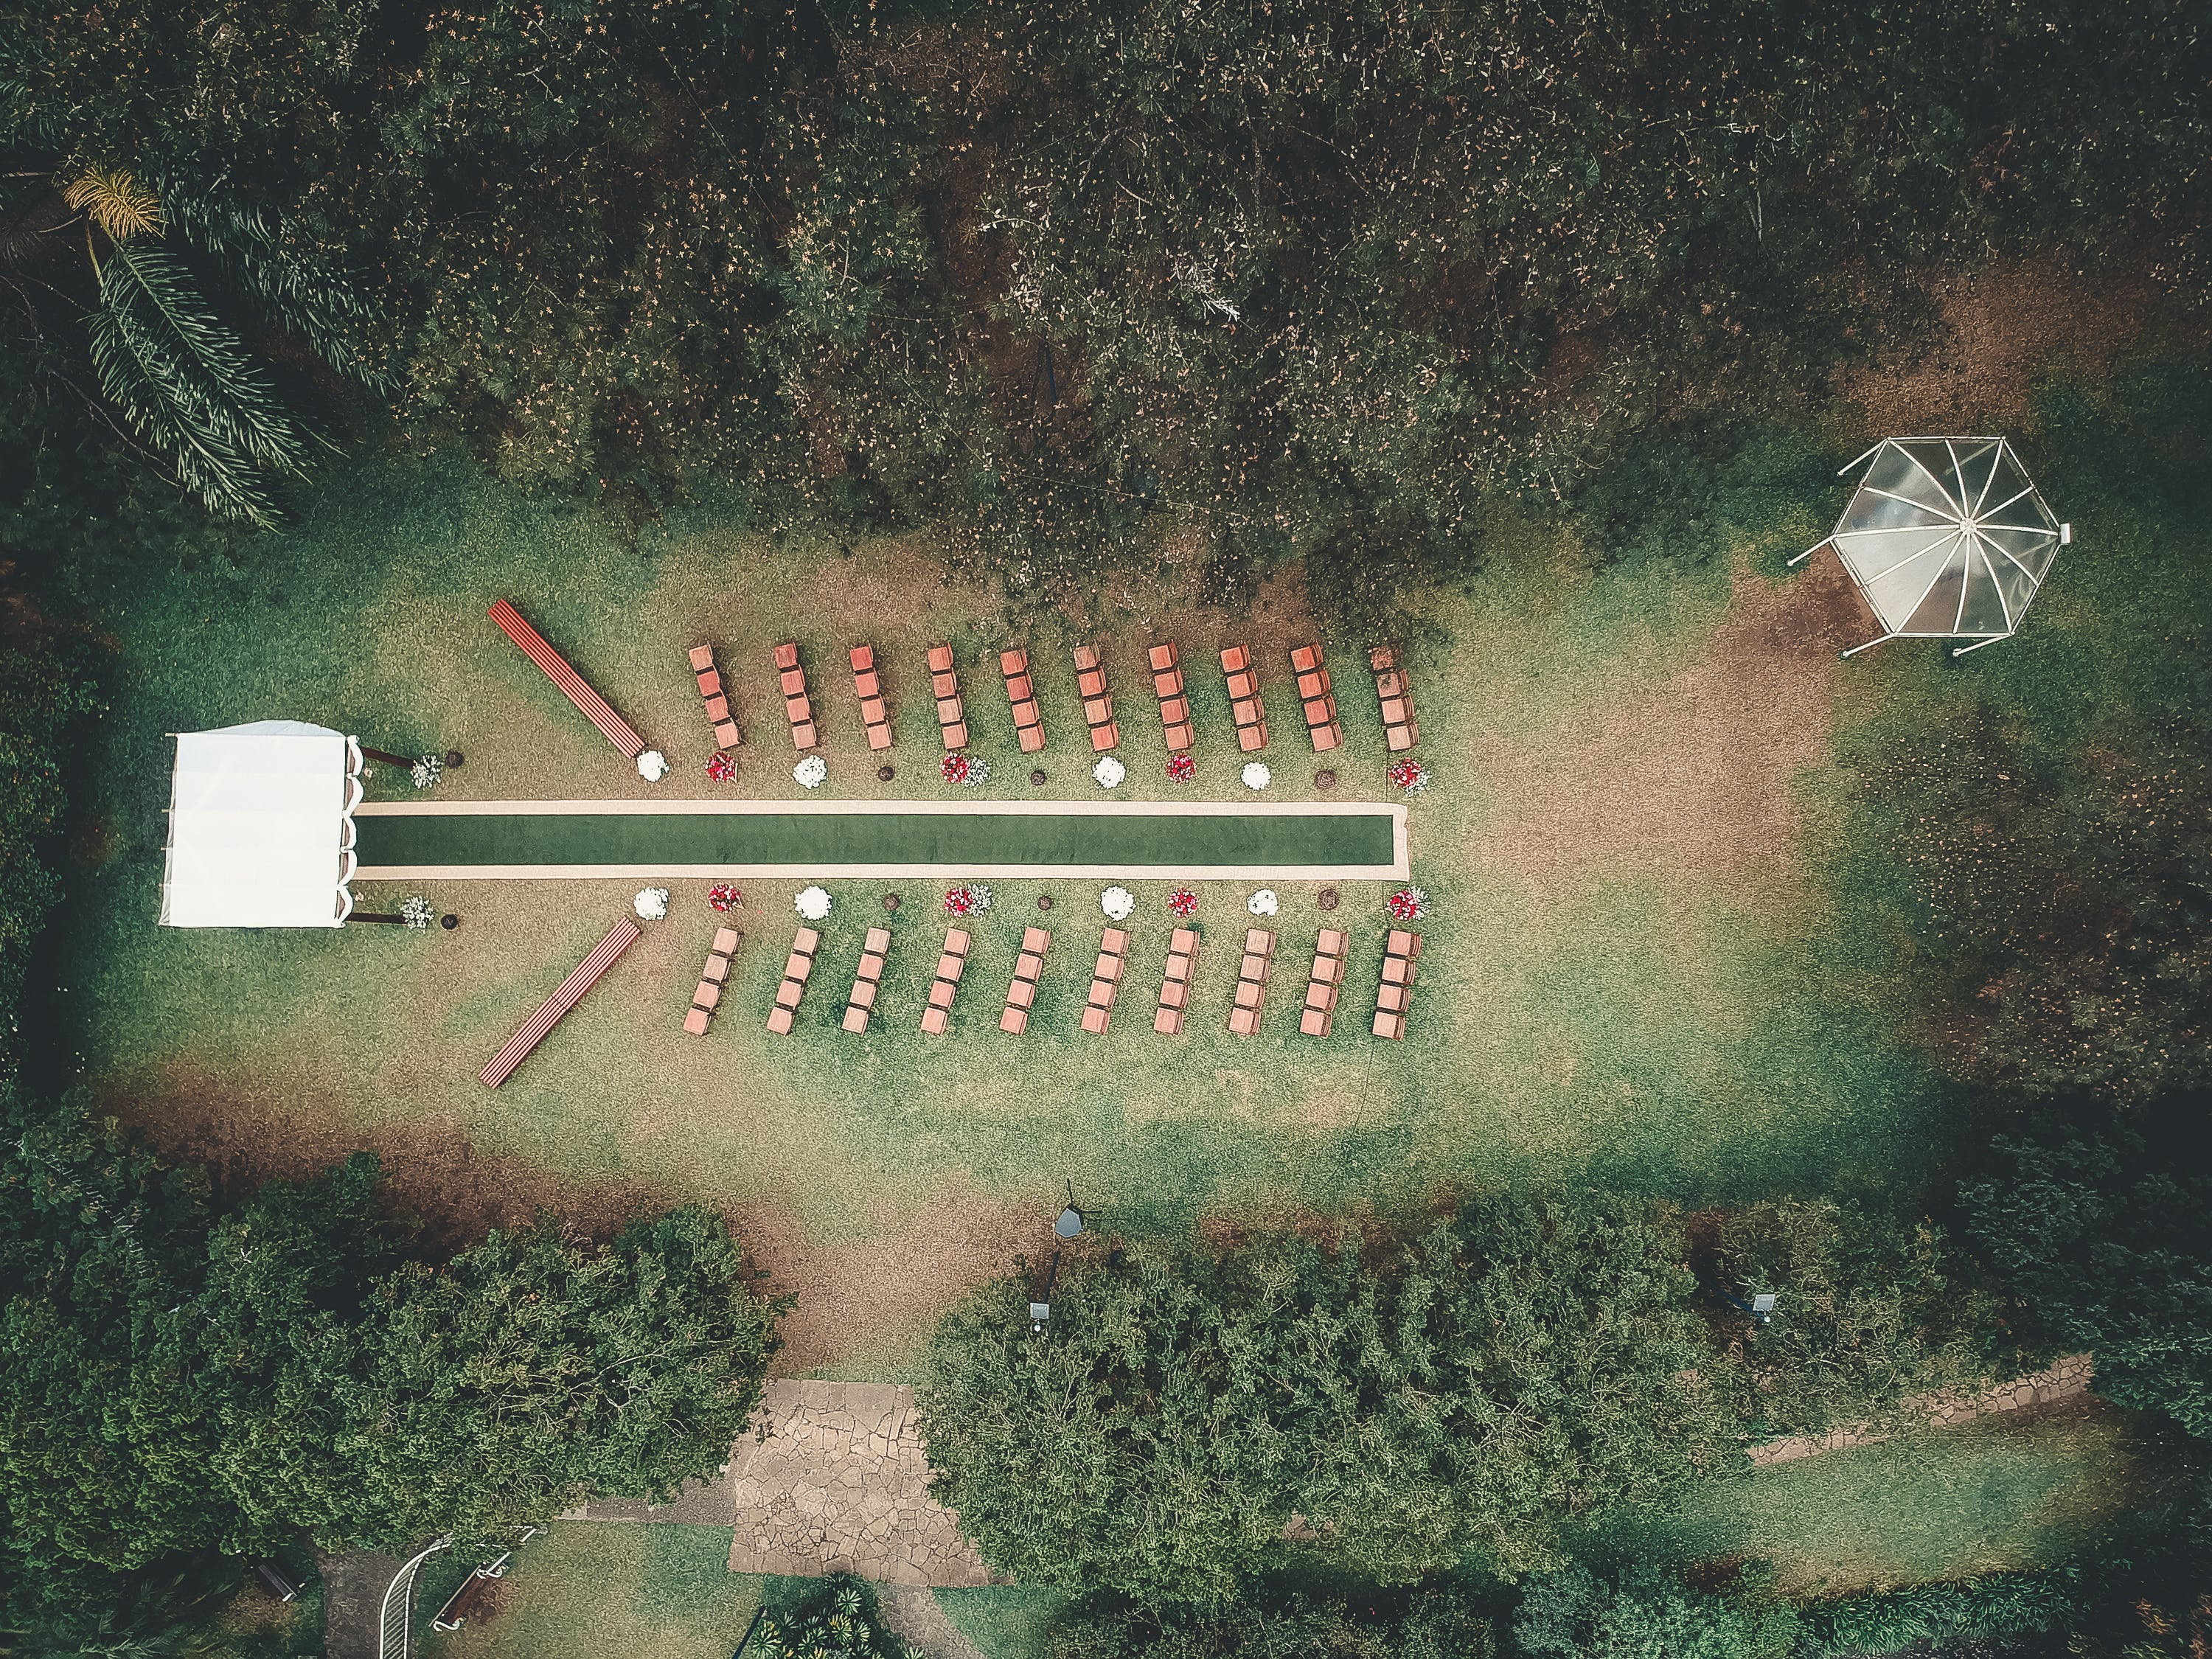 Aerial Photography of House Surrounded by Trees